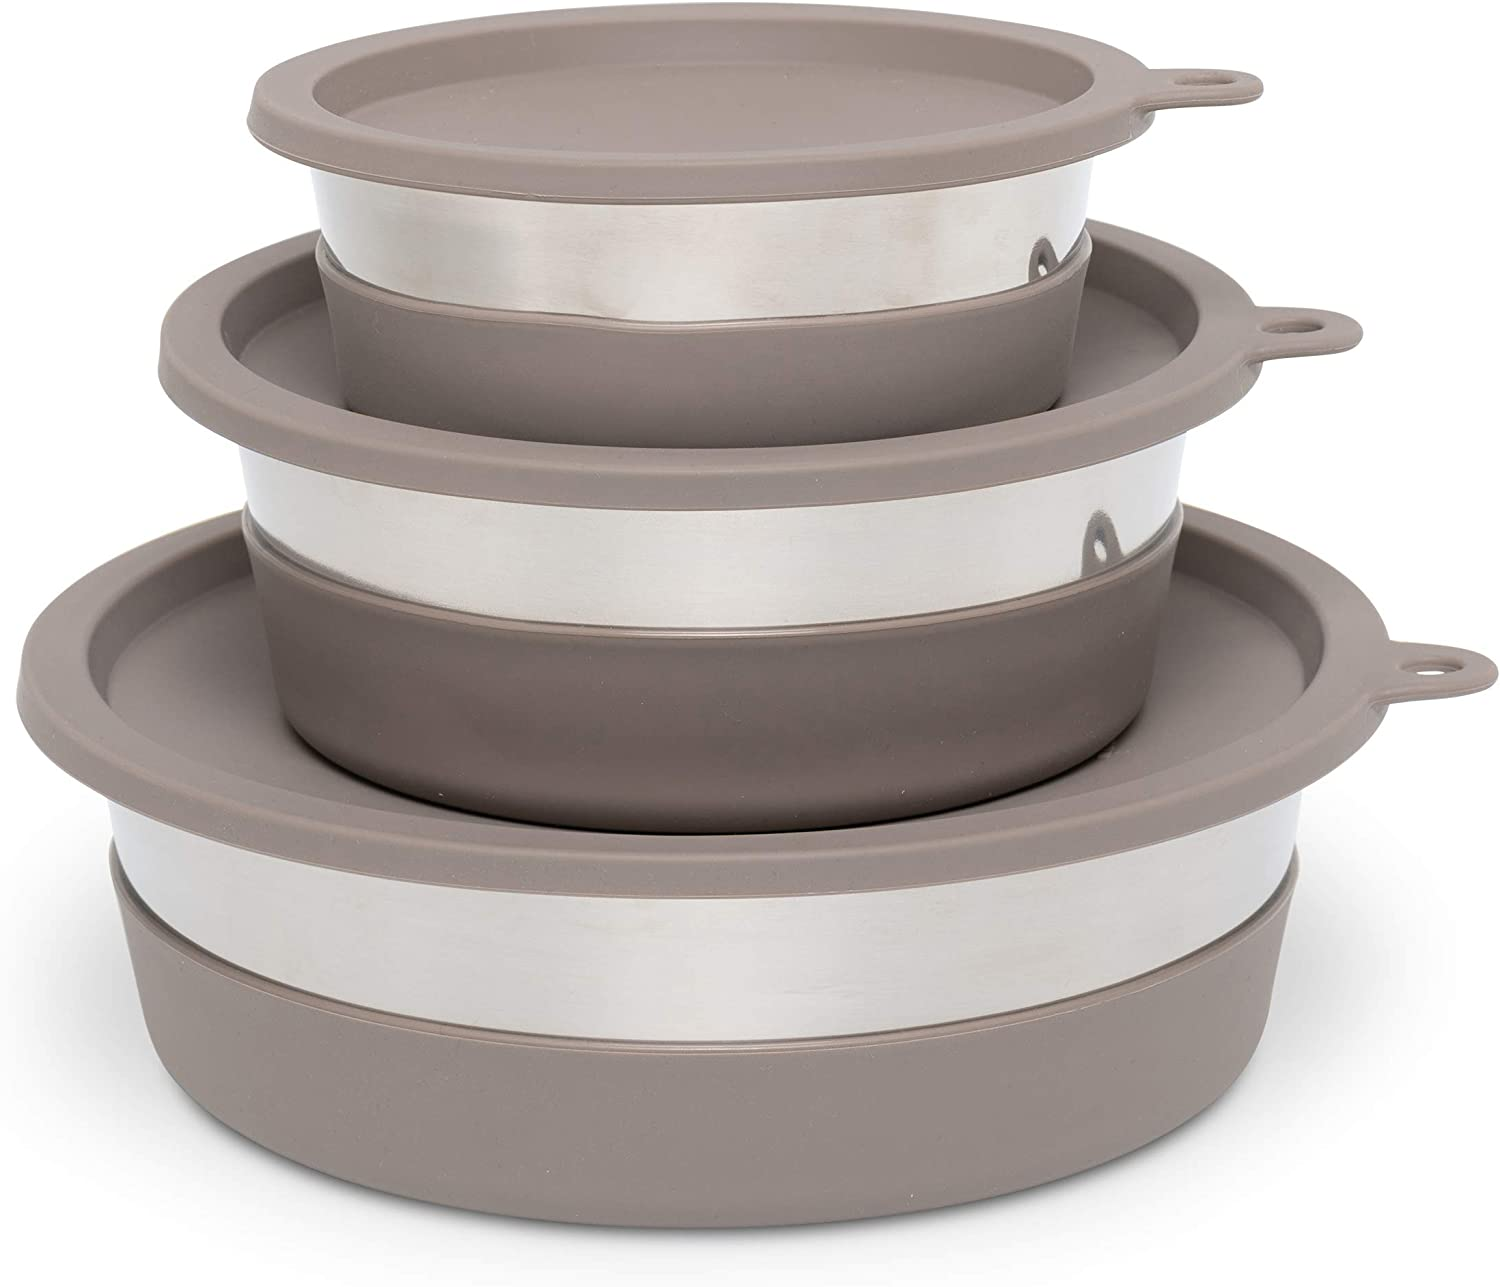 Medium Messy Mutts Stainless Steel Heavy Gauge Bowl with Non-Slip Removable Silicone Base Warm Grey 2.5 Cups